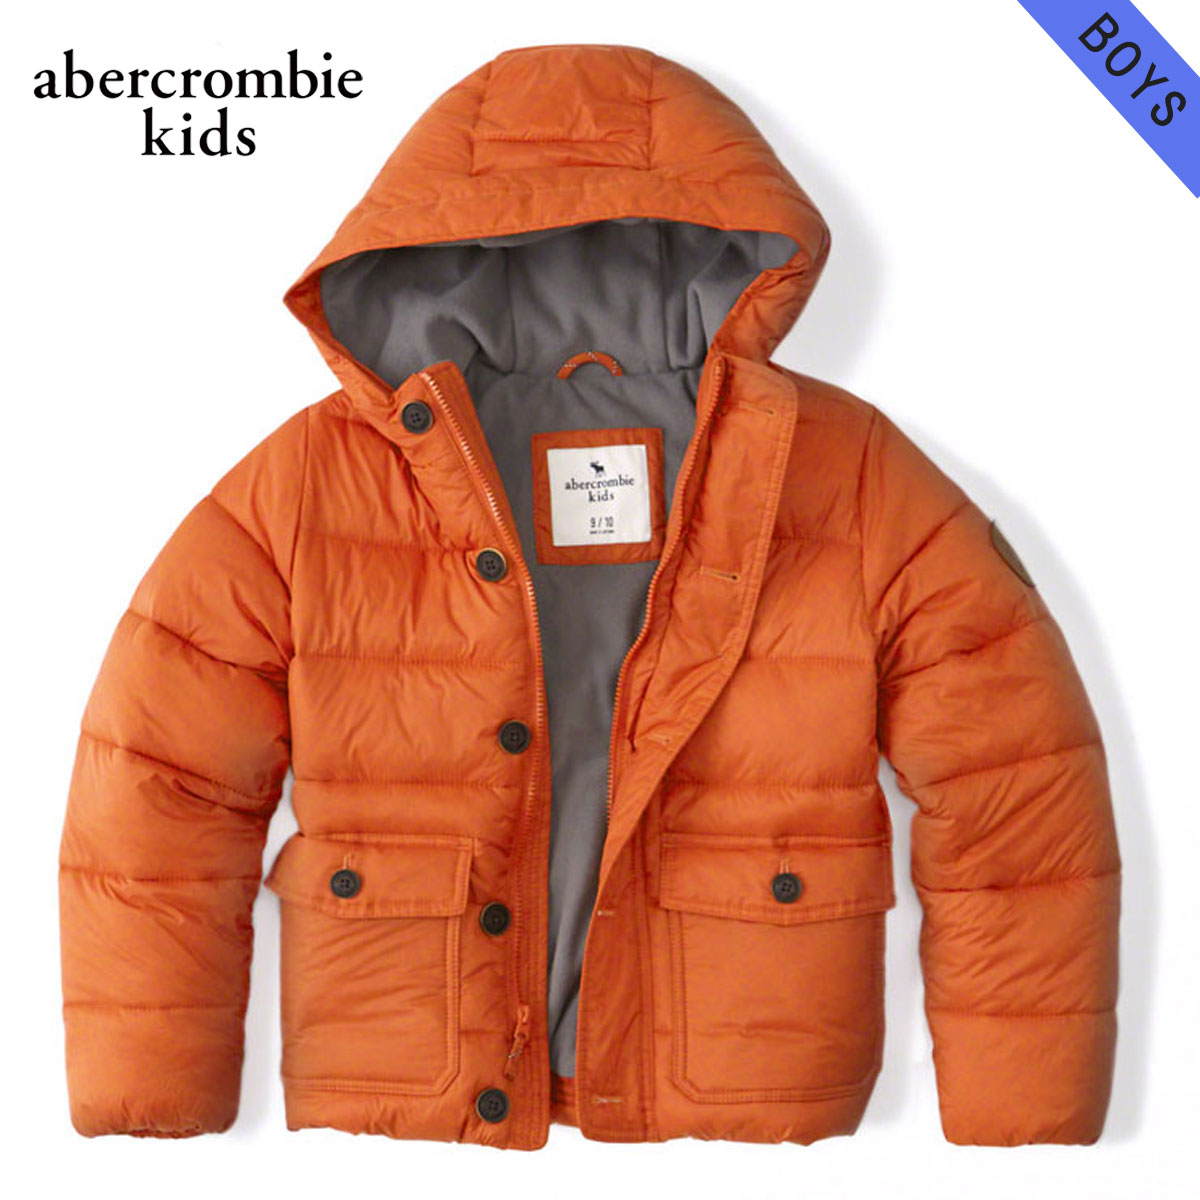 15%OFFセール 【販売期間 12/4 20:00~12/11 1:59】 アバクロキッズ AbercrombieKids 正規品 子供服 ボーイズ アウタージャケット hooded puffer jacket 232-716-0203-070 D00S20